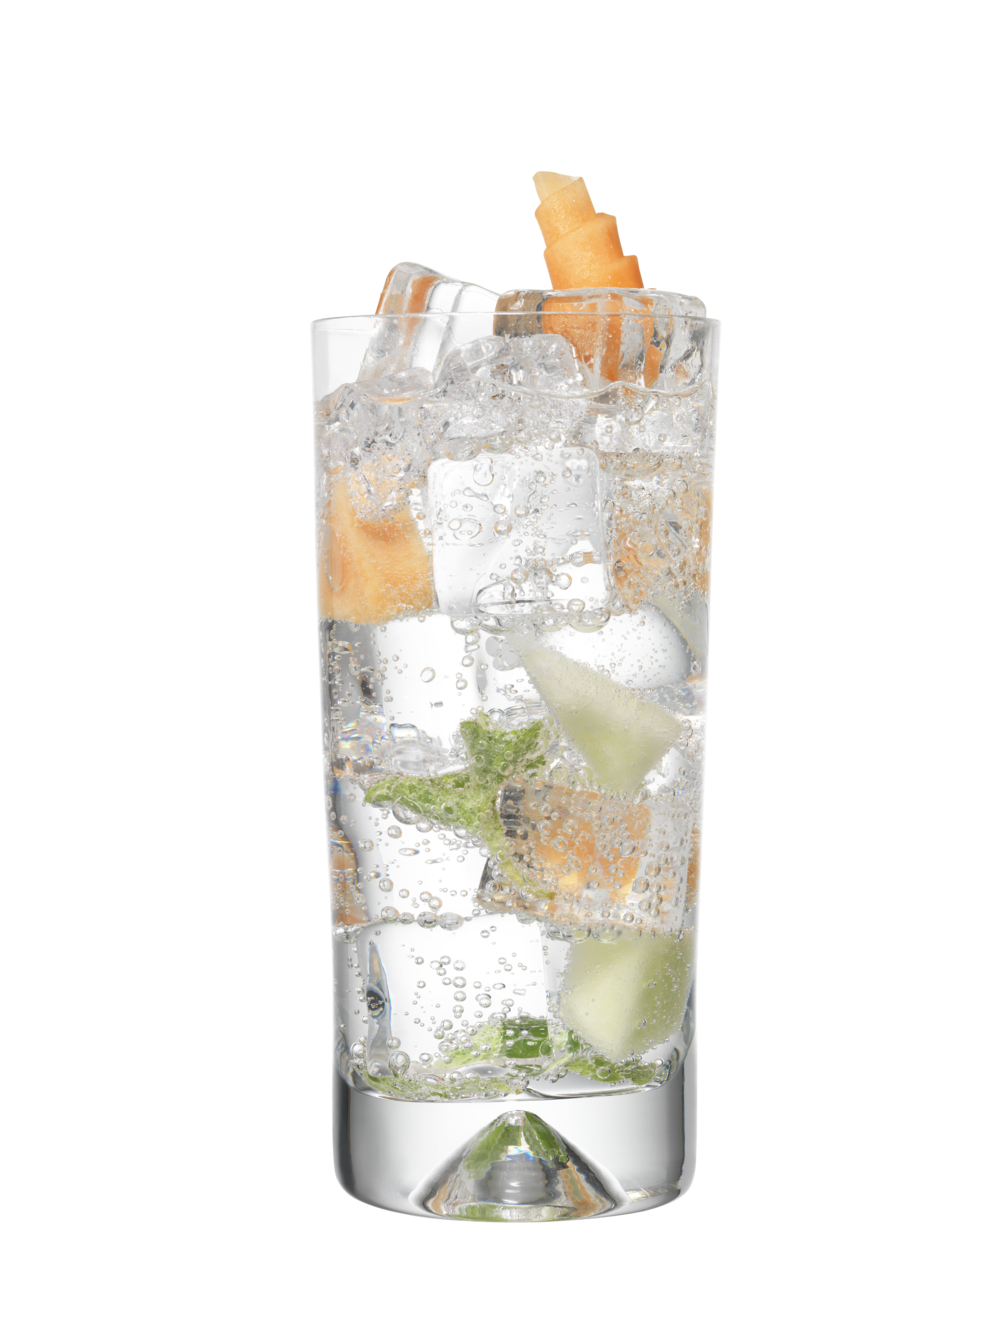 After The Rain - 50ml Fresh Rain Gin100ml Cucumber TonicPinch Fresh Oregano5 Melon Cubes